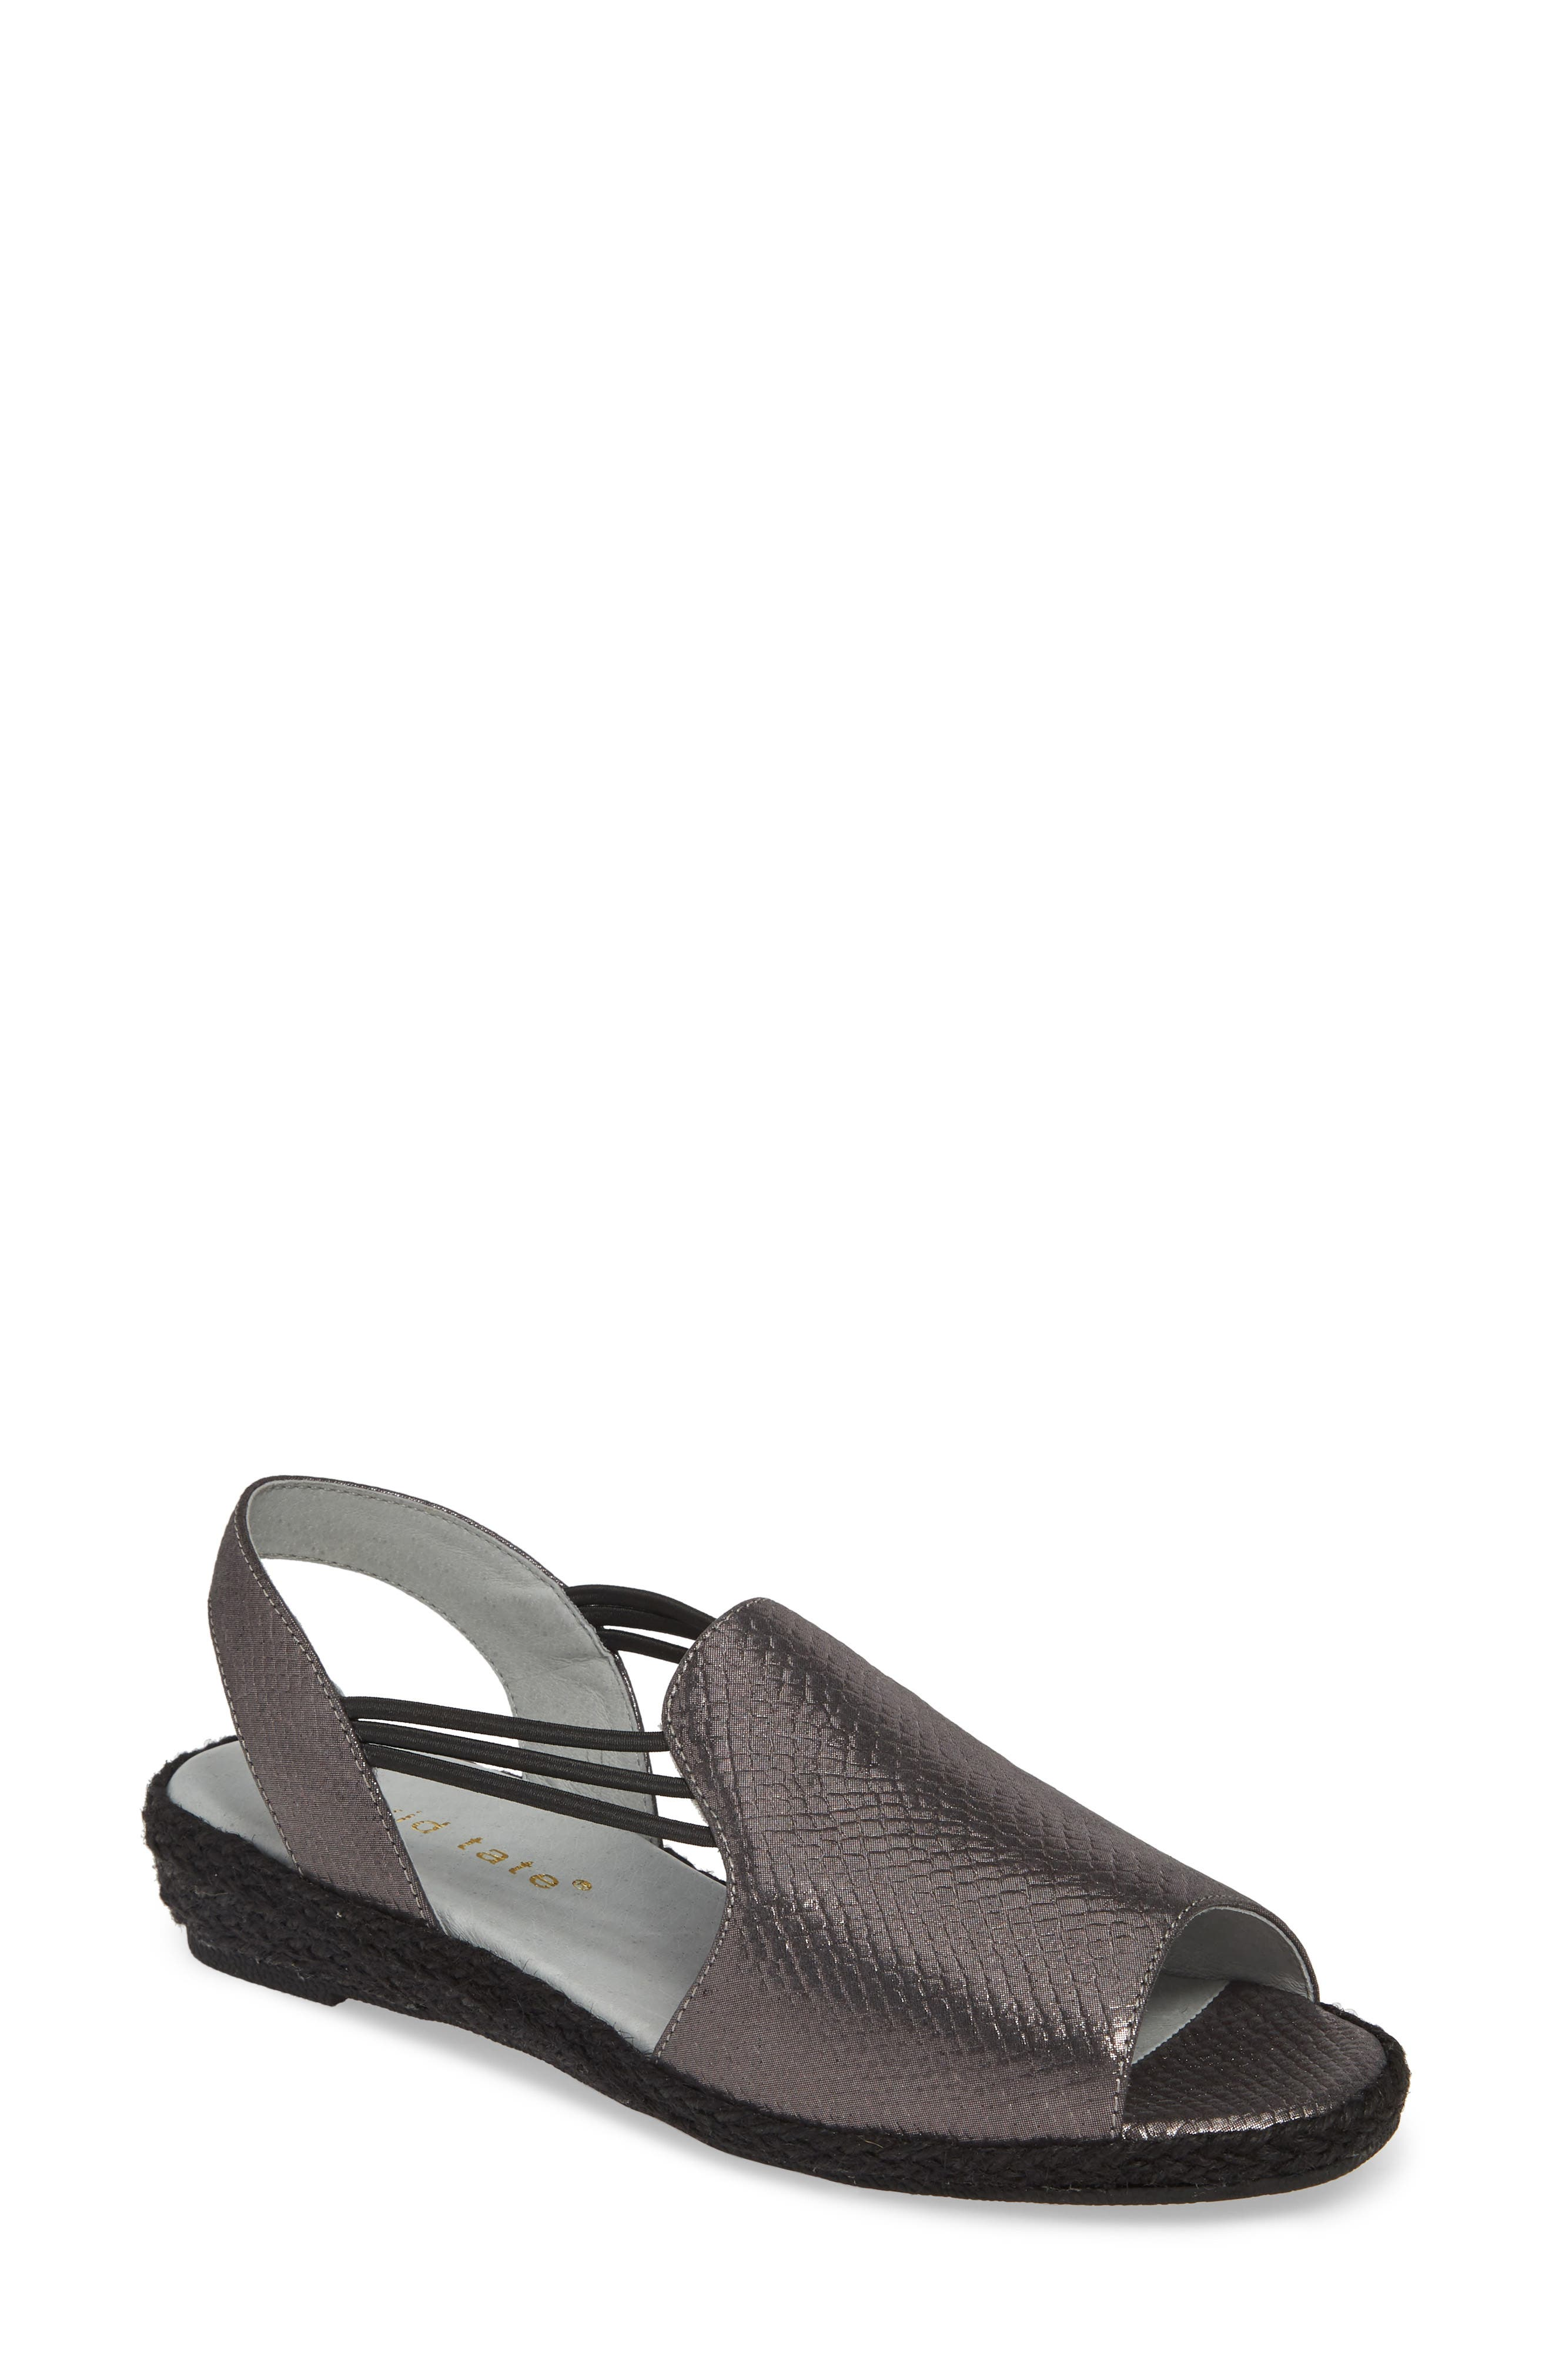 June Wedge Sandal, Main, color, BLACK LEATHER